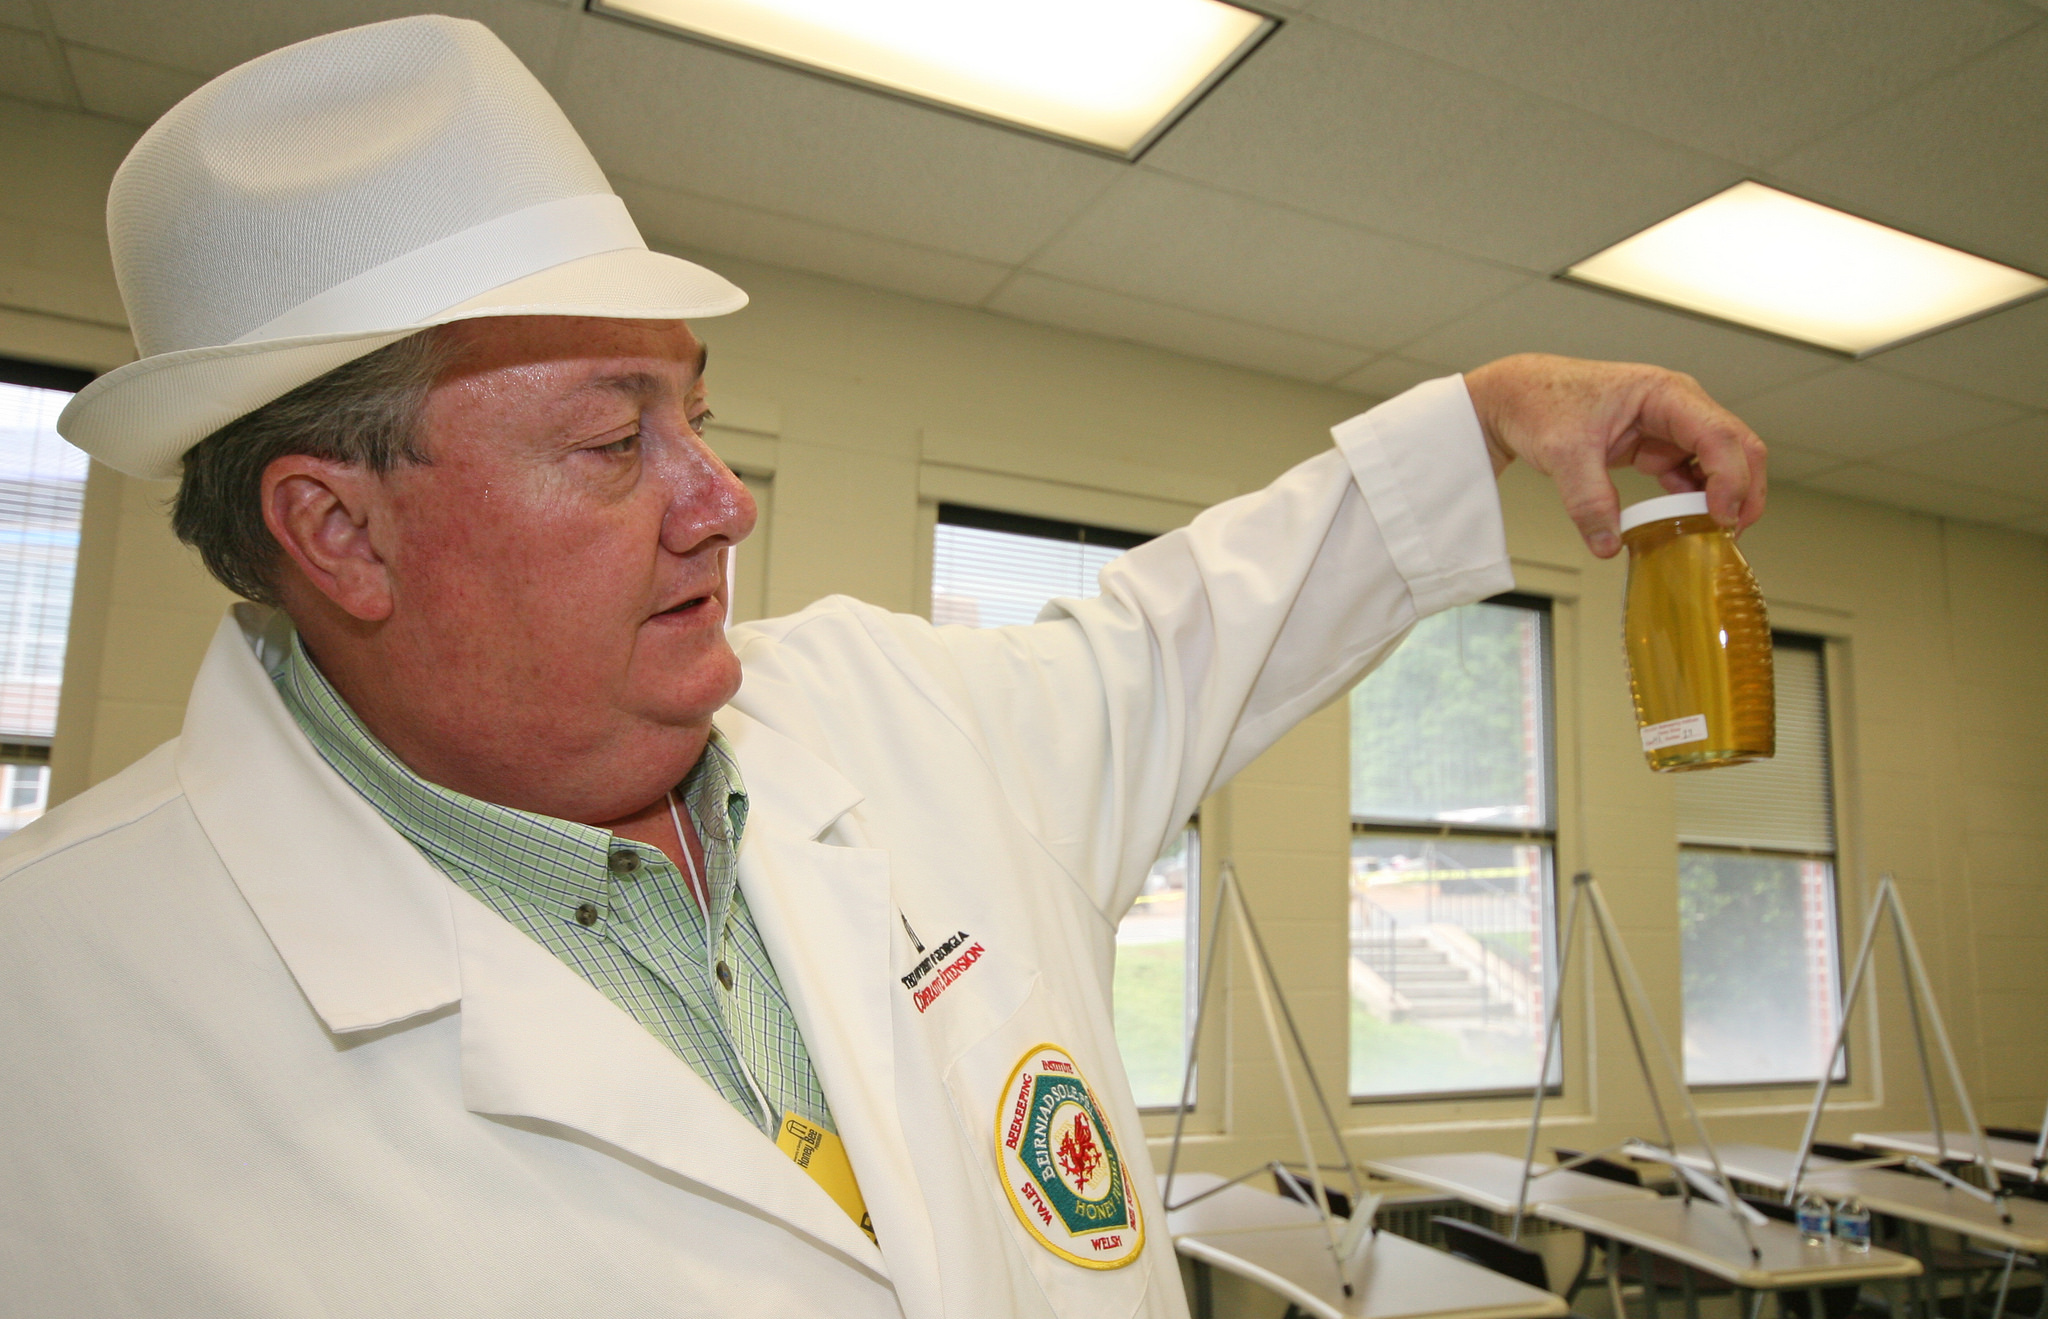 Putnam County Extension Coordinator Keith Fielder inspects a jar of honey. A Georgia Master Beekeeper, Fielder will lead a basic beekeeping class Aug. 7 in Madison.